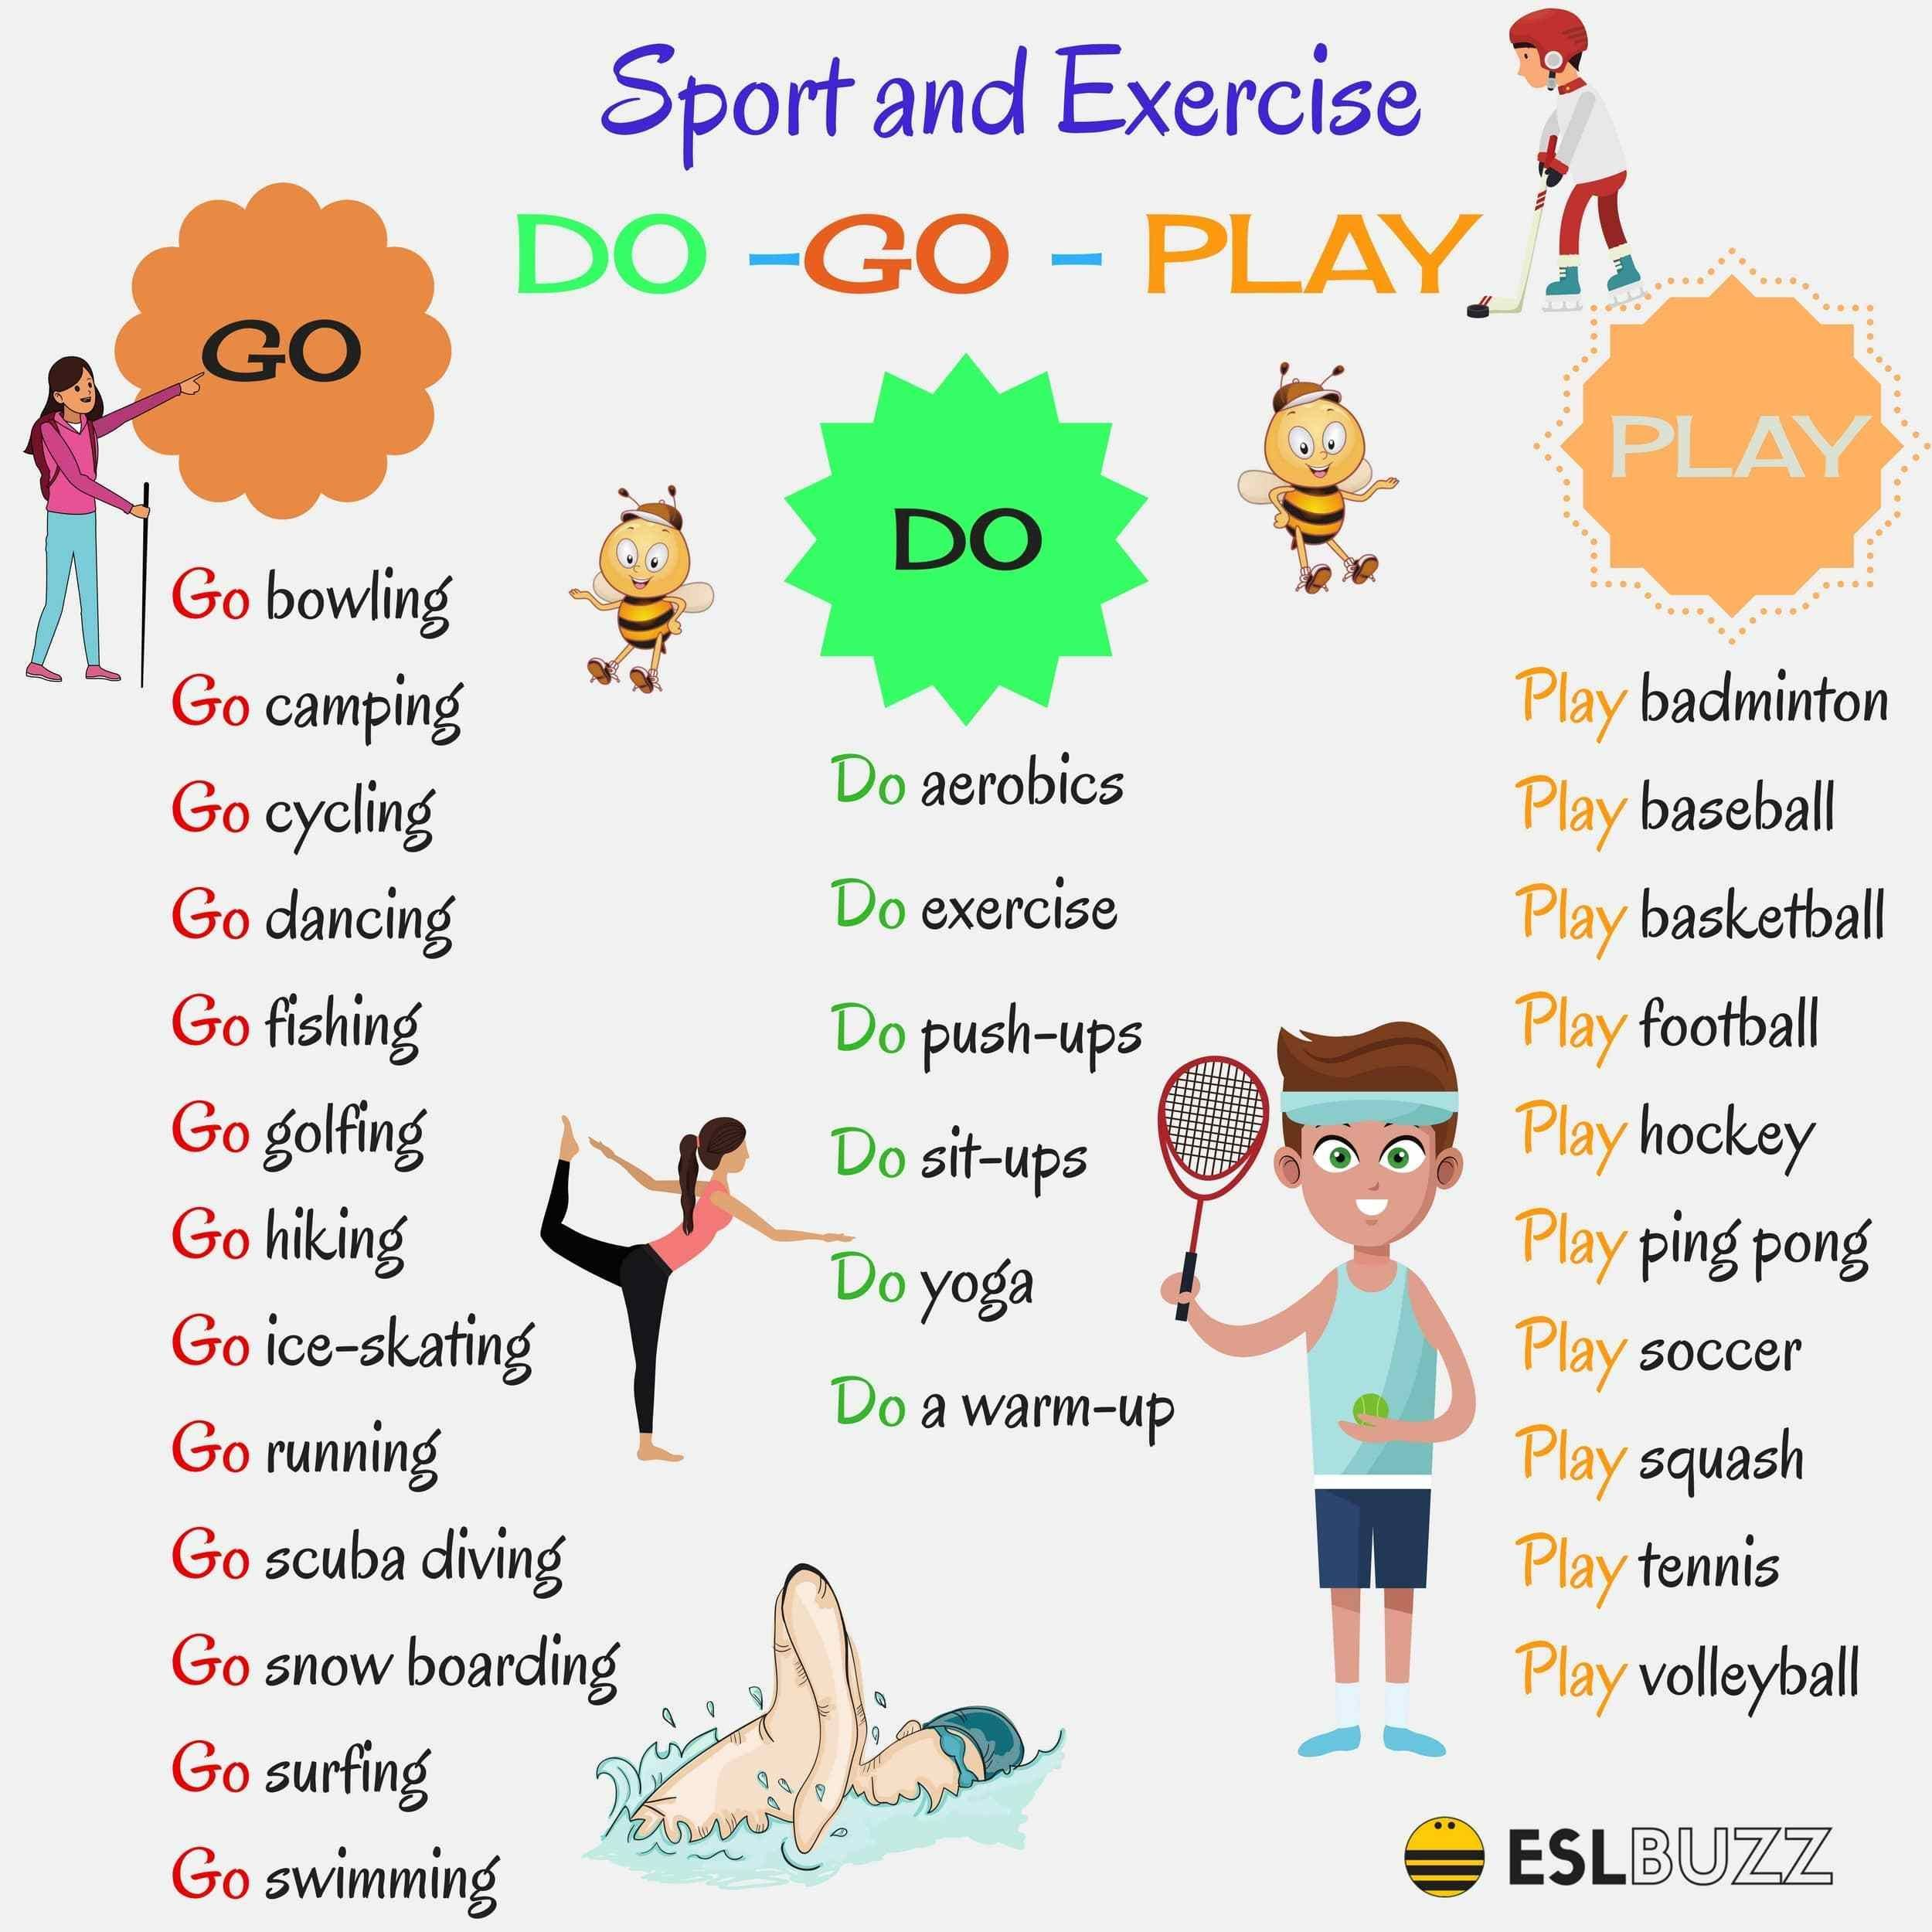 We Usually Use The Three Verbs Play Do And Go With Sports